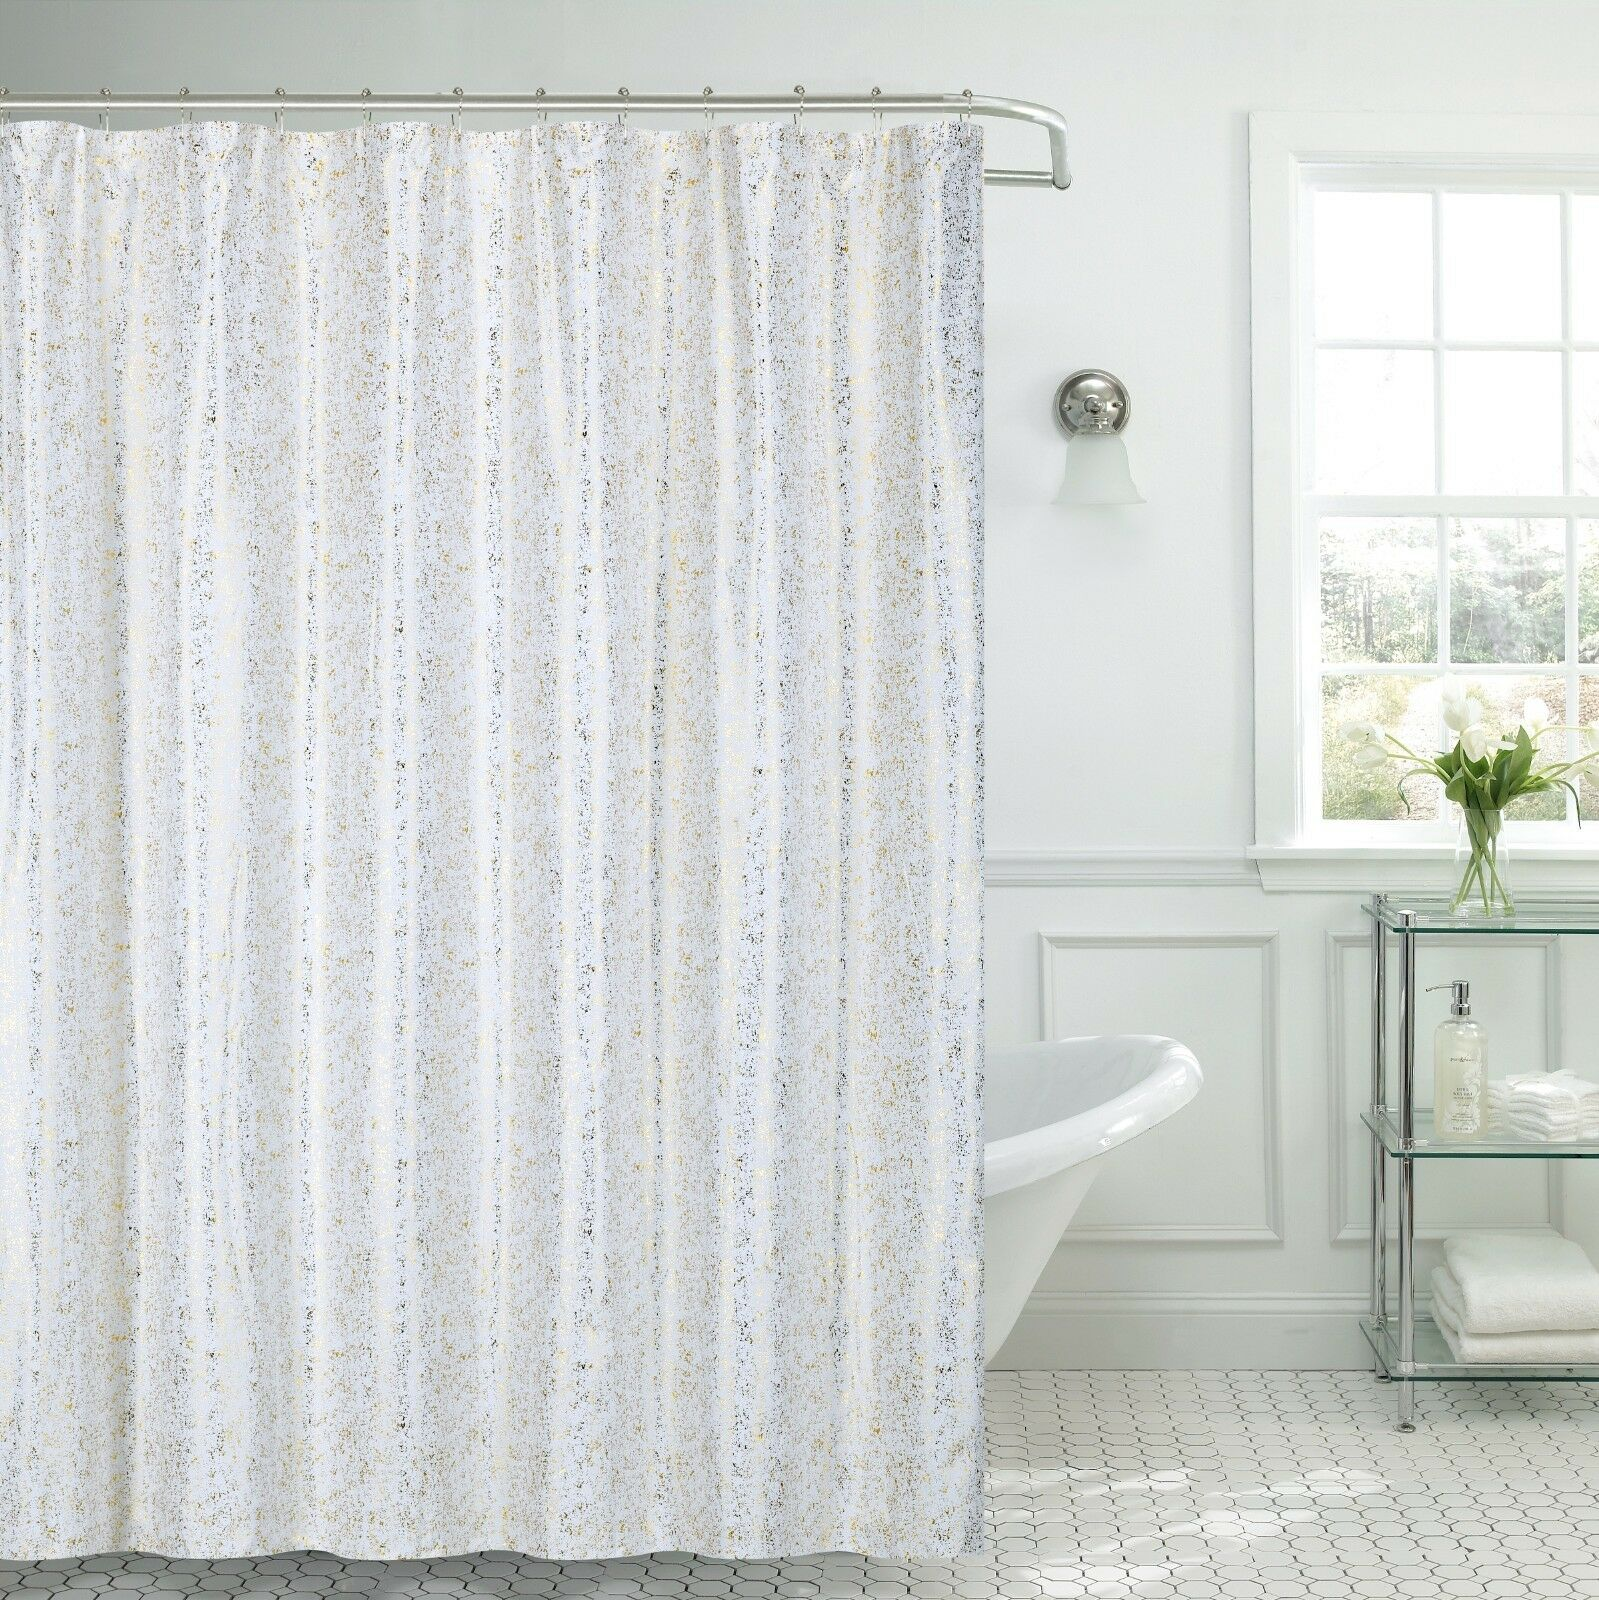 Details About Kendall Gold White Shiny Foil Print Fabric Shower Curtain W Hooks 70x70